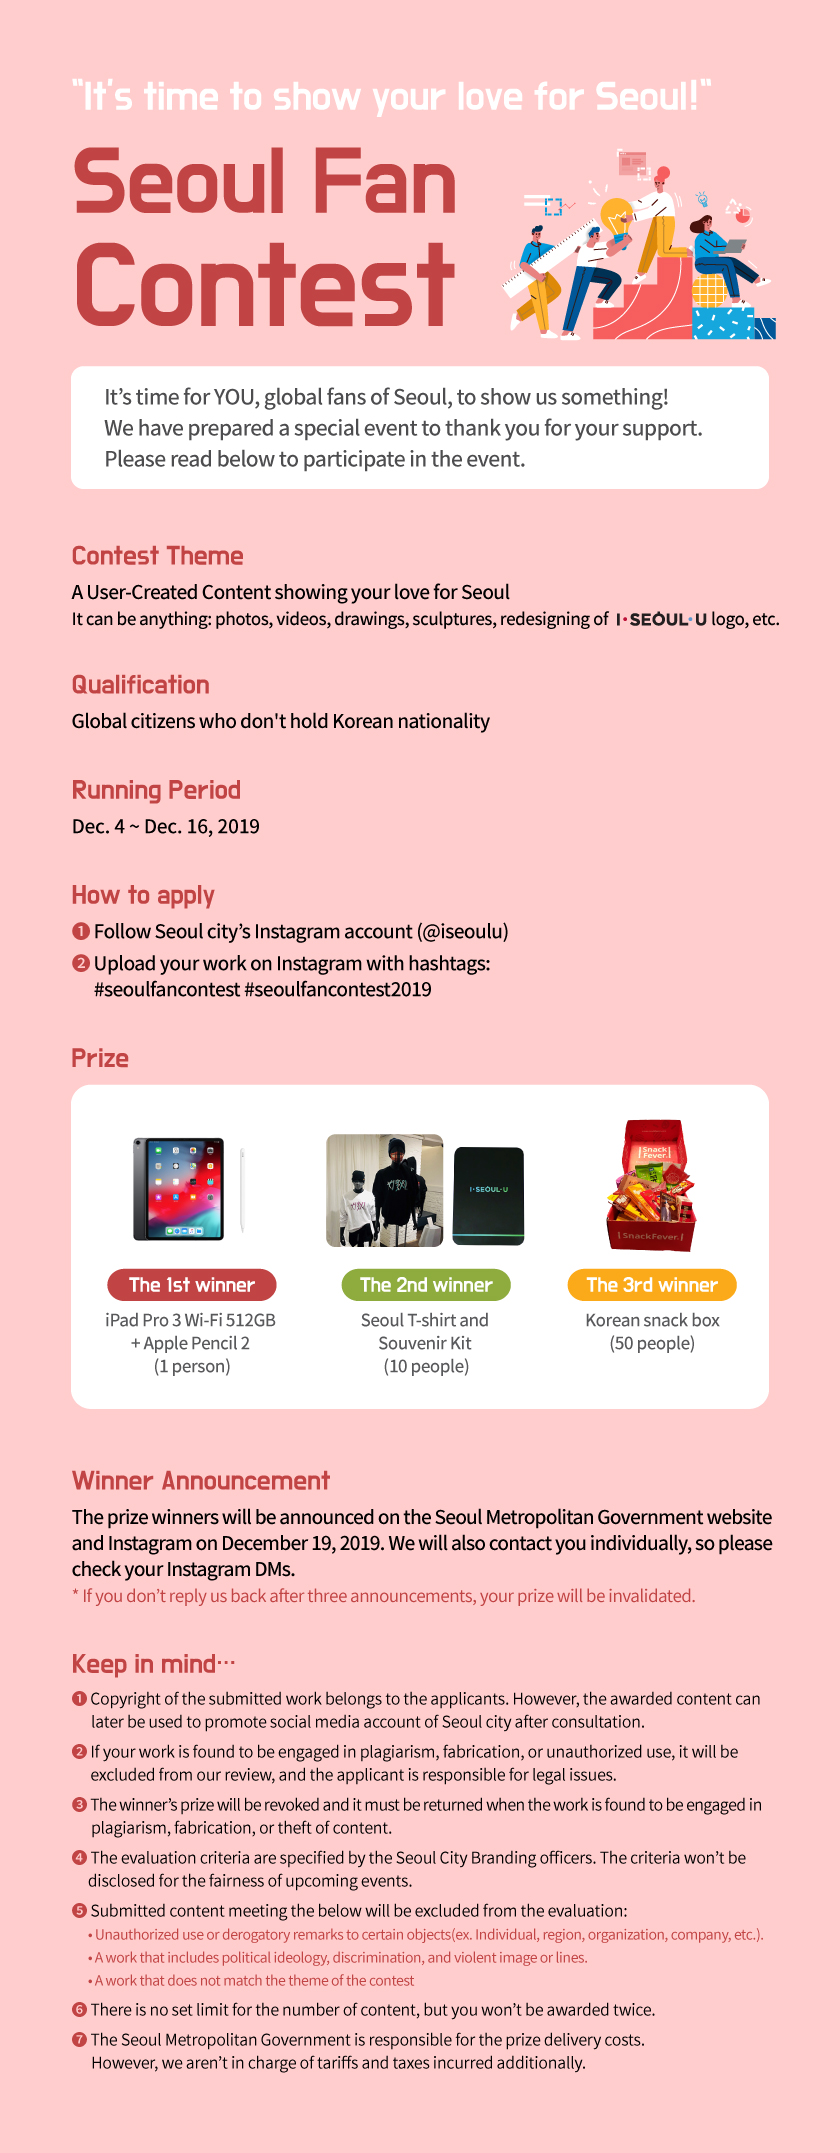 'It's time to show your love for Seoul!' Seoul Fan  Contest It's time for YOU, global fans of Seoul, to show us something! We have prepared a special event to thank the support from you. Please read below to take part of the event. Contest Theme A User-Created Content showing your love for Seoul It can be anything: photos, videos, drawings, sculptures, redesigning of logo, etc. Qualification Global citizens who don't hold Korean nationality Running Period Dec. 4 ~ Dec. 16, 2019 How to apply ❶ Follow Seoul city's Instagram account (@iseoulu) ❷ Upload your work on Instagram with hashtags:        #seoulfancontest #seoulfancontest2019 Prize The 1st winner iPad Pro 3 Wi-Fi 512GB  + Apple Pencil 2  (1 person) The 2nd winner Seoul T-shirt and  Souvenir Kit  (10 people) The 3rd winner Korean snack box (50 people) Winner Announcement The prize winners will be announced on the Seoul Metropolitan Government website  and Instagram on December 19, 2019. We will also contact you individually, so please  keep your Instagram DM box in check.  * If you don't reply us back after three announcements, your prize will be invalidated. Keep in mind… ❶ Copyright of the submitted work belongs to the applicants. However, the awarded content can         later be used to promote social media account of Seoul city after consultation. ❷ If your work is found to be engaged in plagiarism, fabrication, or unauthorized use, it will be         excluded from our review, and the applicant is responsible for legal issues. ❸ The winner's prize will be revoked and it must be returned when the work is found to be engaged in        plagiarism, fabrication, or theft of content. ❹ The evaluation criteria are specified by the Seoul City Branding officers. The criteria won't be       disclosed for the fairness of upcoming events. ❺ Submitted content meeting the below will be excluded from the evaluation:       • Unauthorized use or derogatory remarks to certain objects(ex. Individual, region, organization, comp